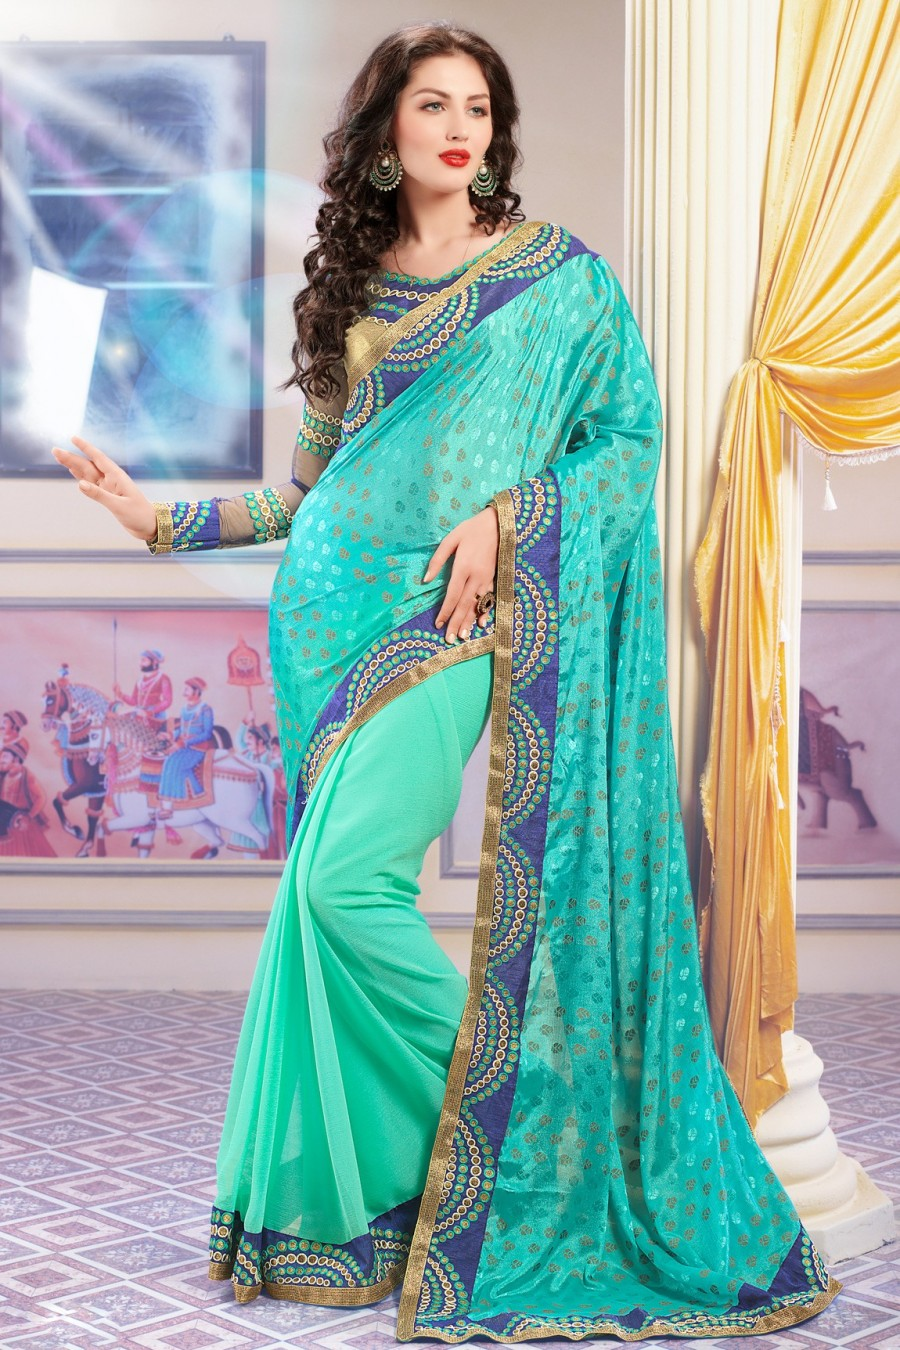 Buy Sea Green and Aqua Crepe Jacquard Saree with Copper Blouse Online